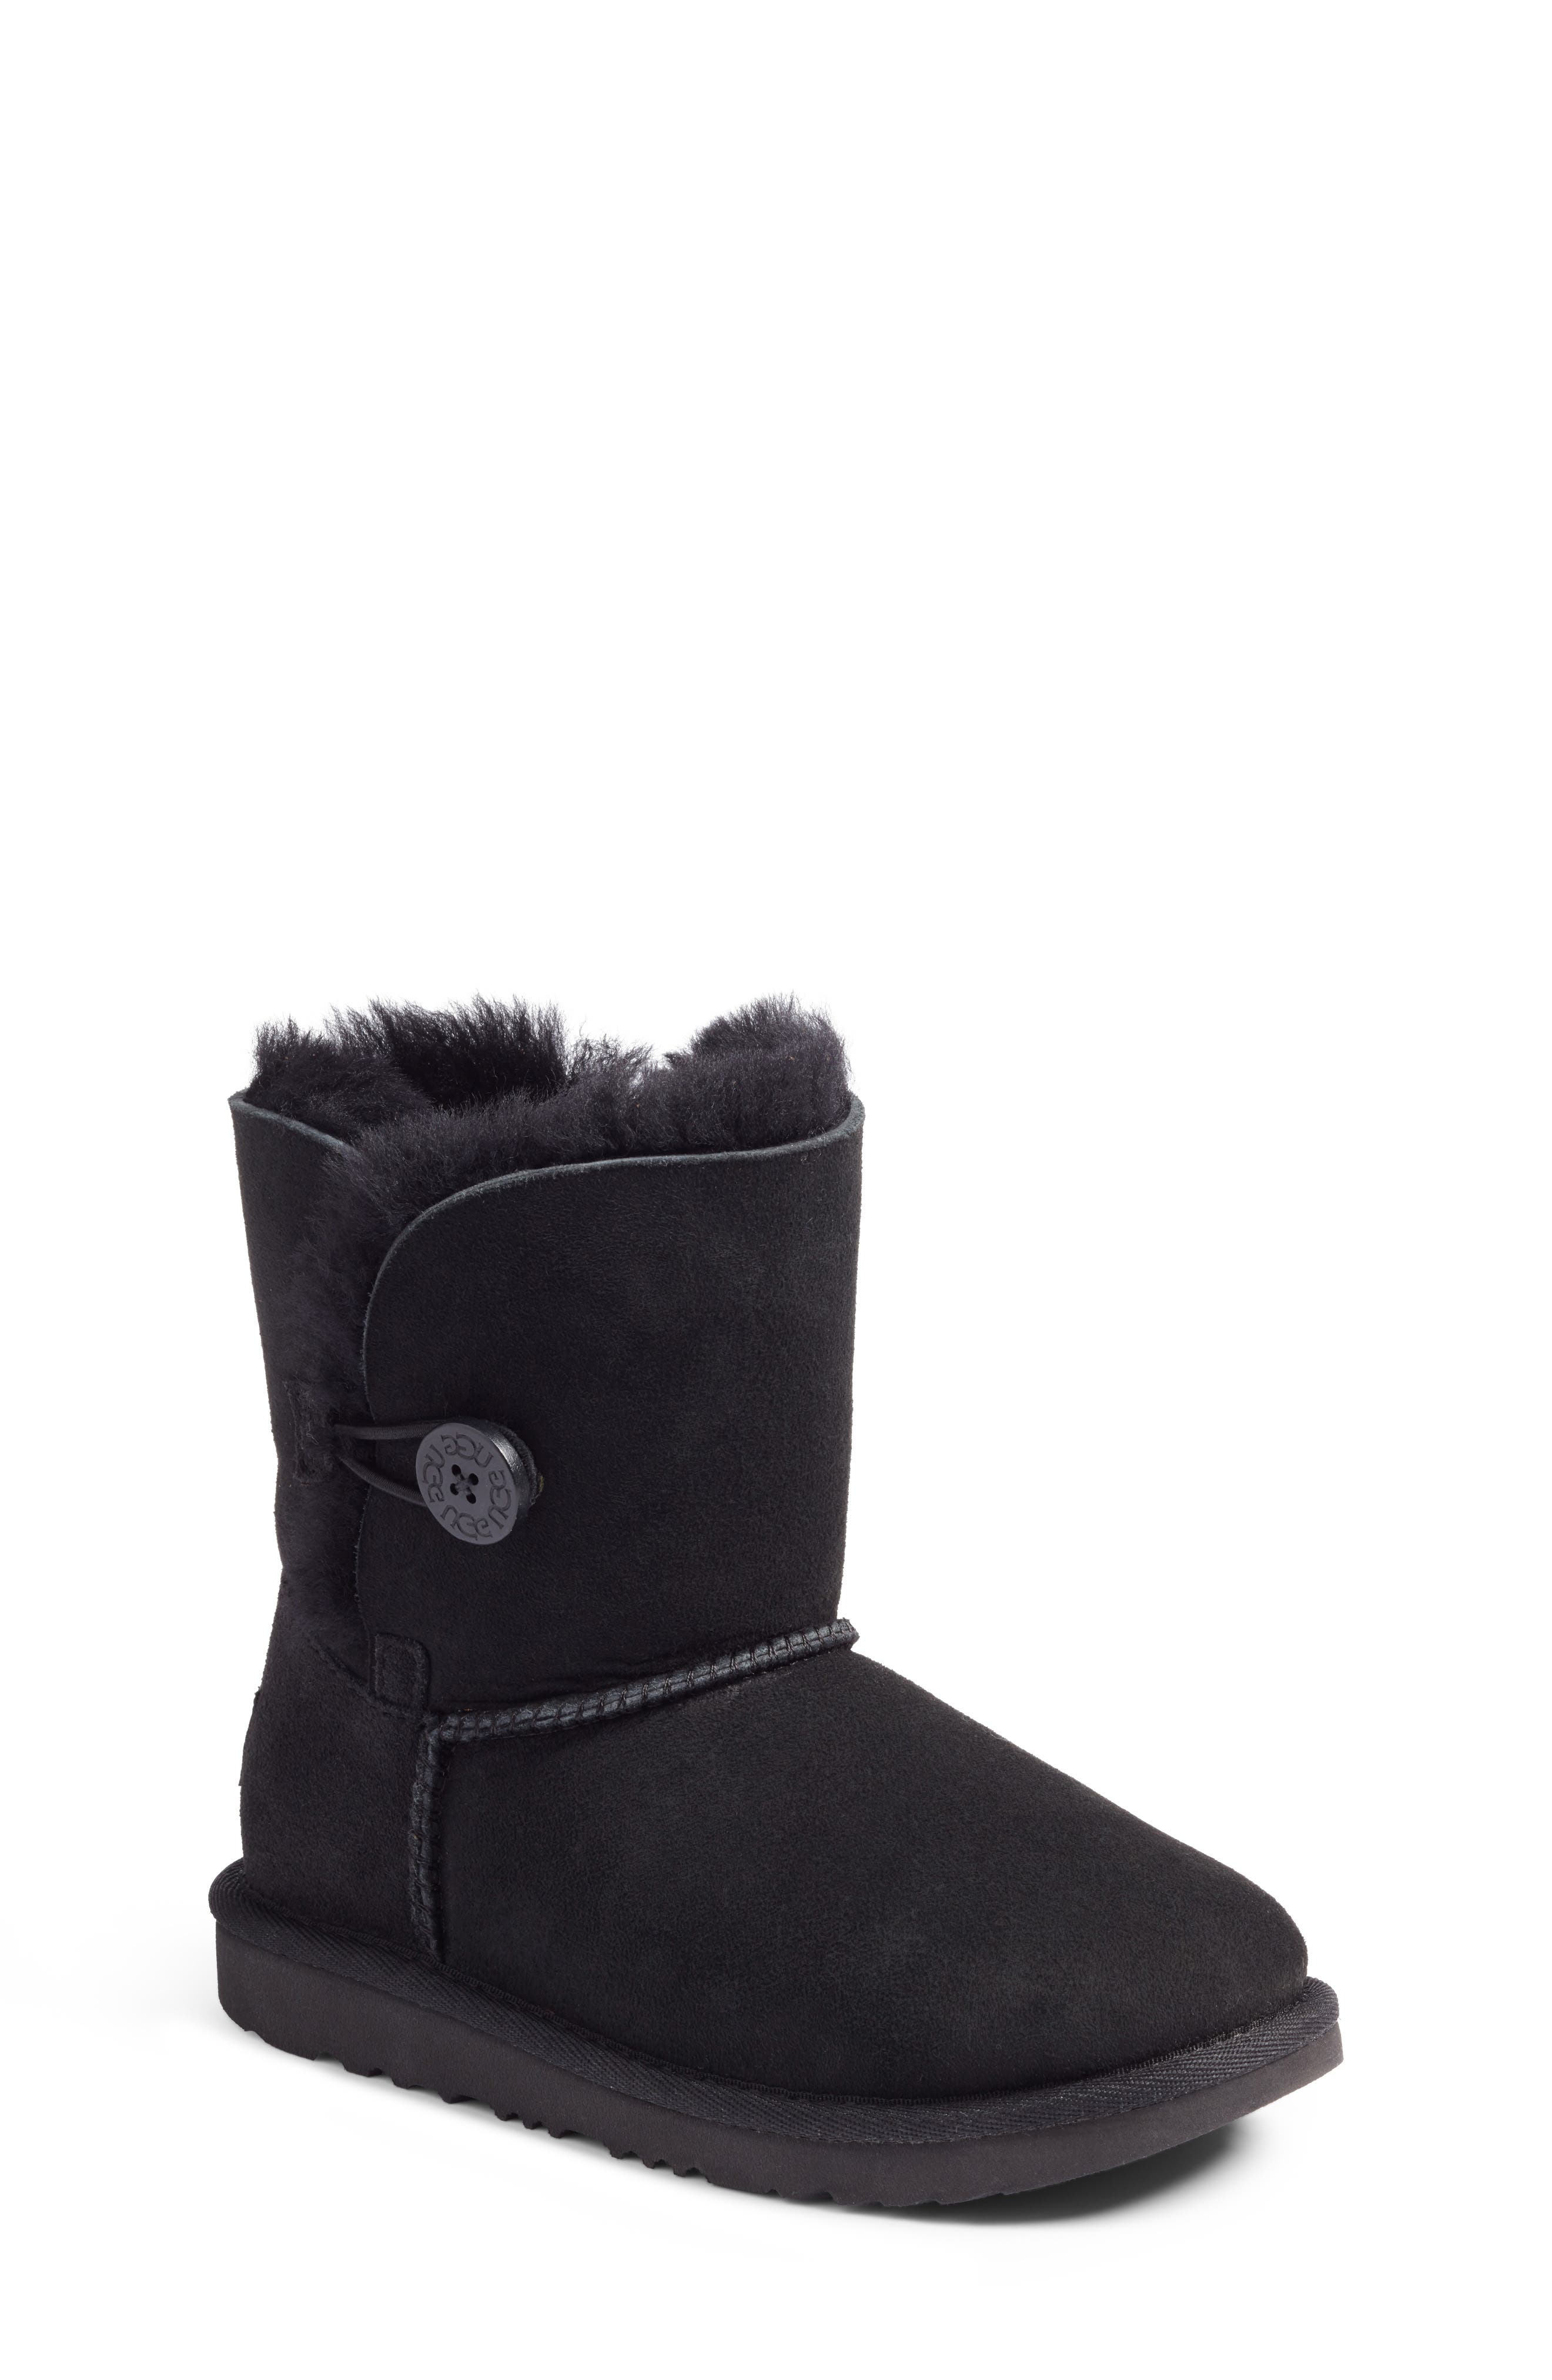 Bailey Button II Water Resistant Genuine Shearling Boot,                             Main thumbnail 1, color,                             BLACK SUEDE